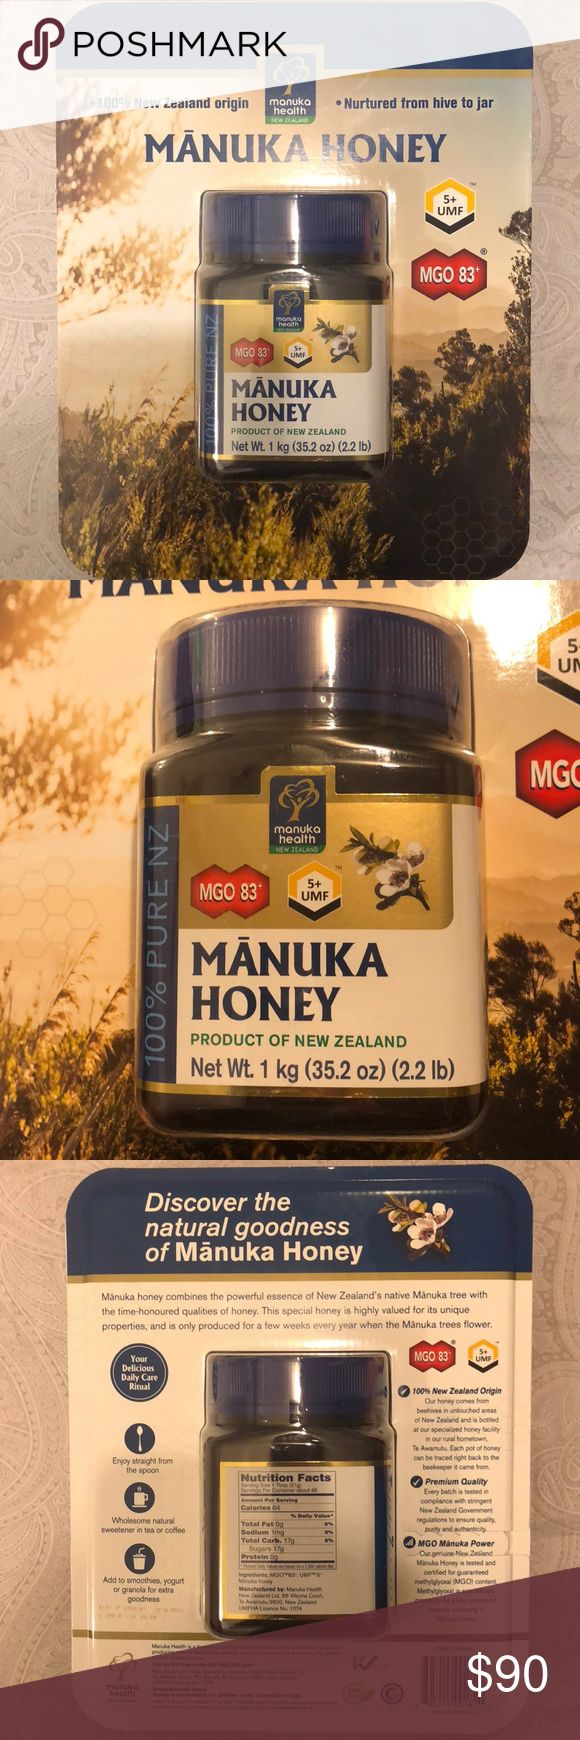 NEW & SEALED 2.2 LBS Manuka Honey from New Zealand Manuka Honey 2.2 lbs New Zealand origin  Brand new and sealed Other